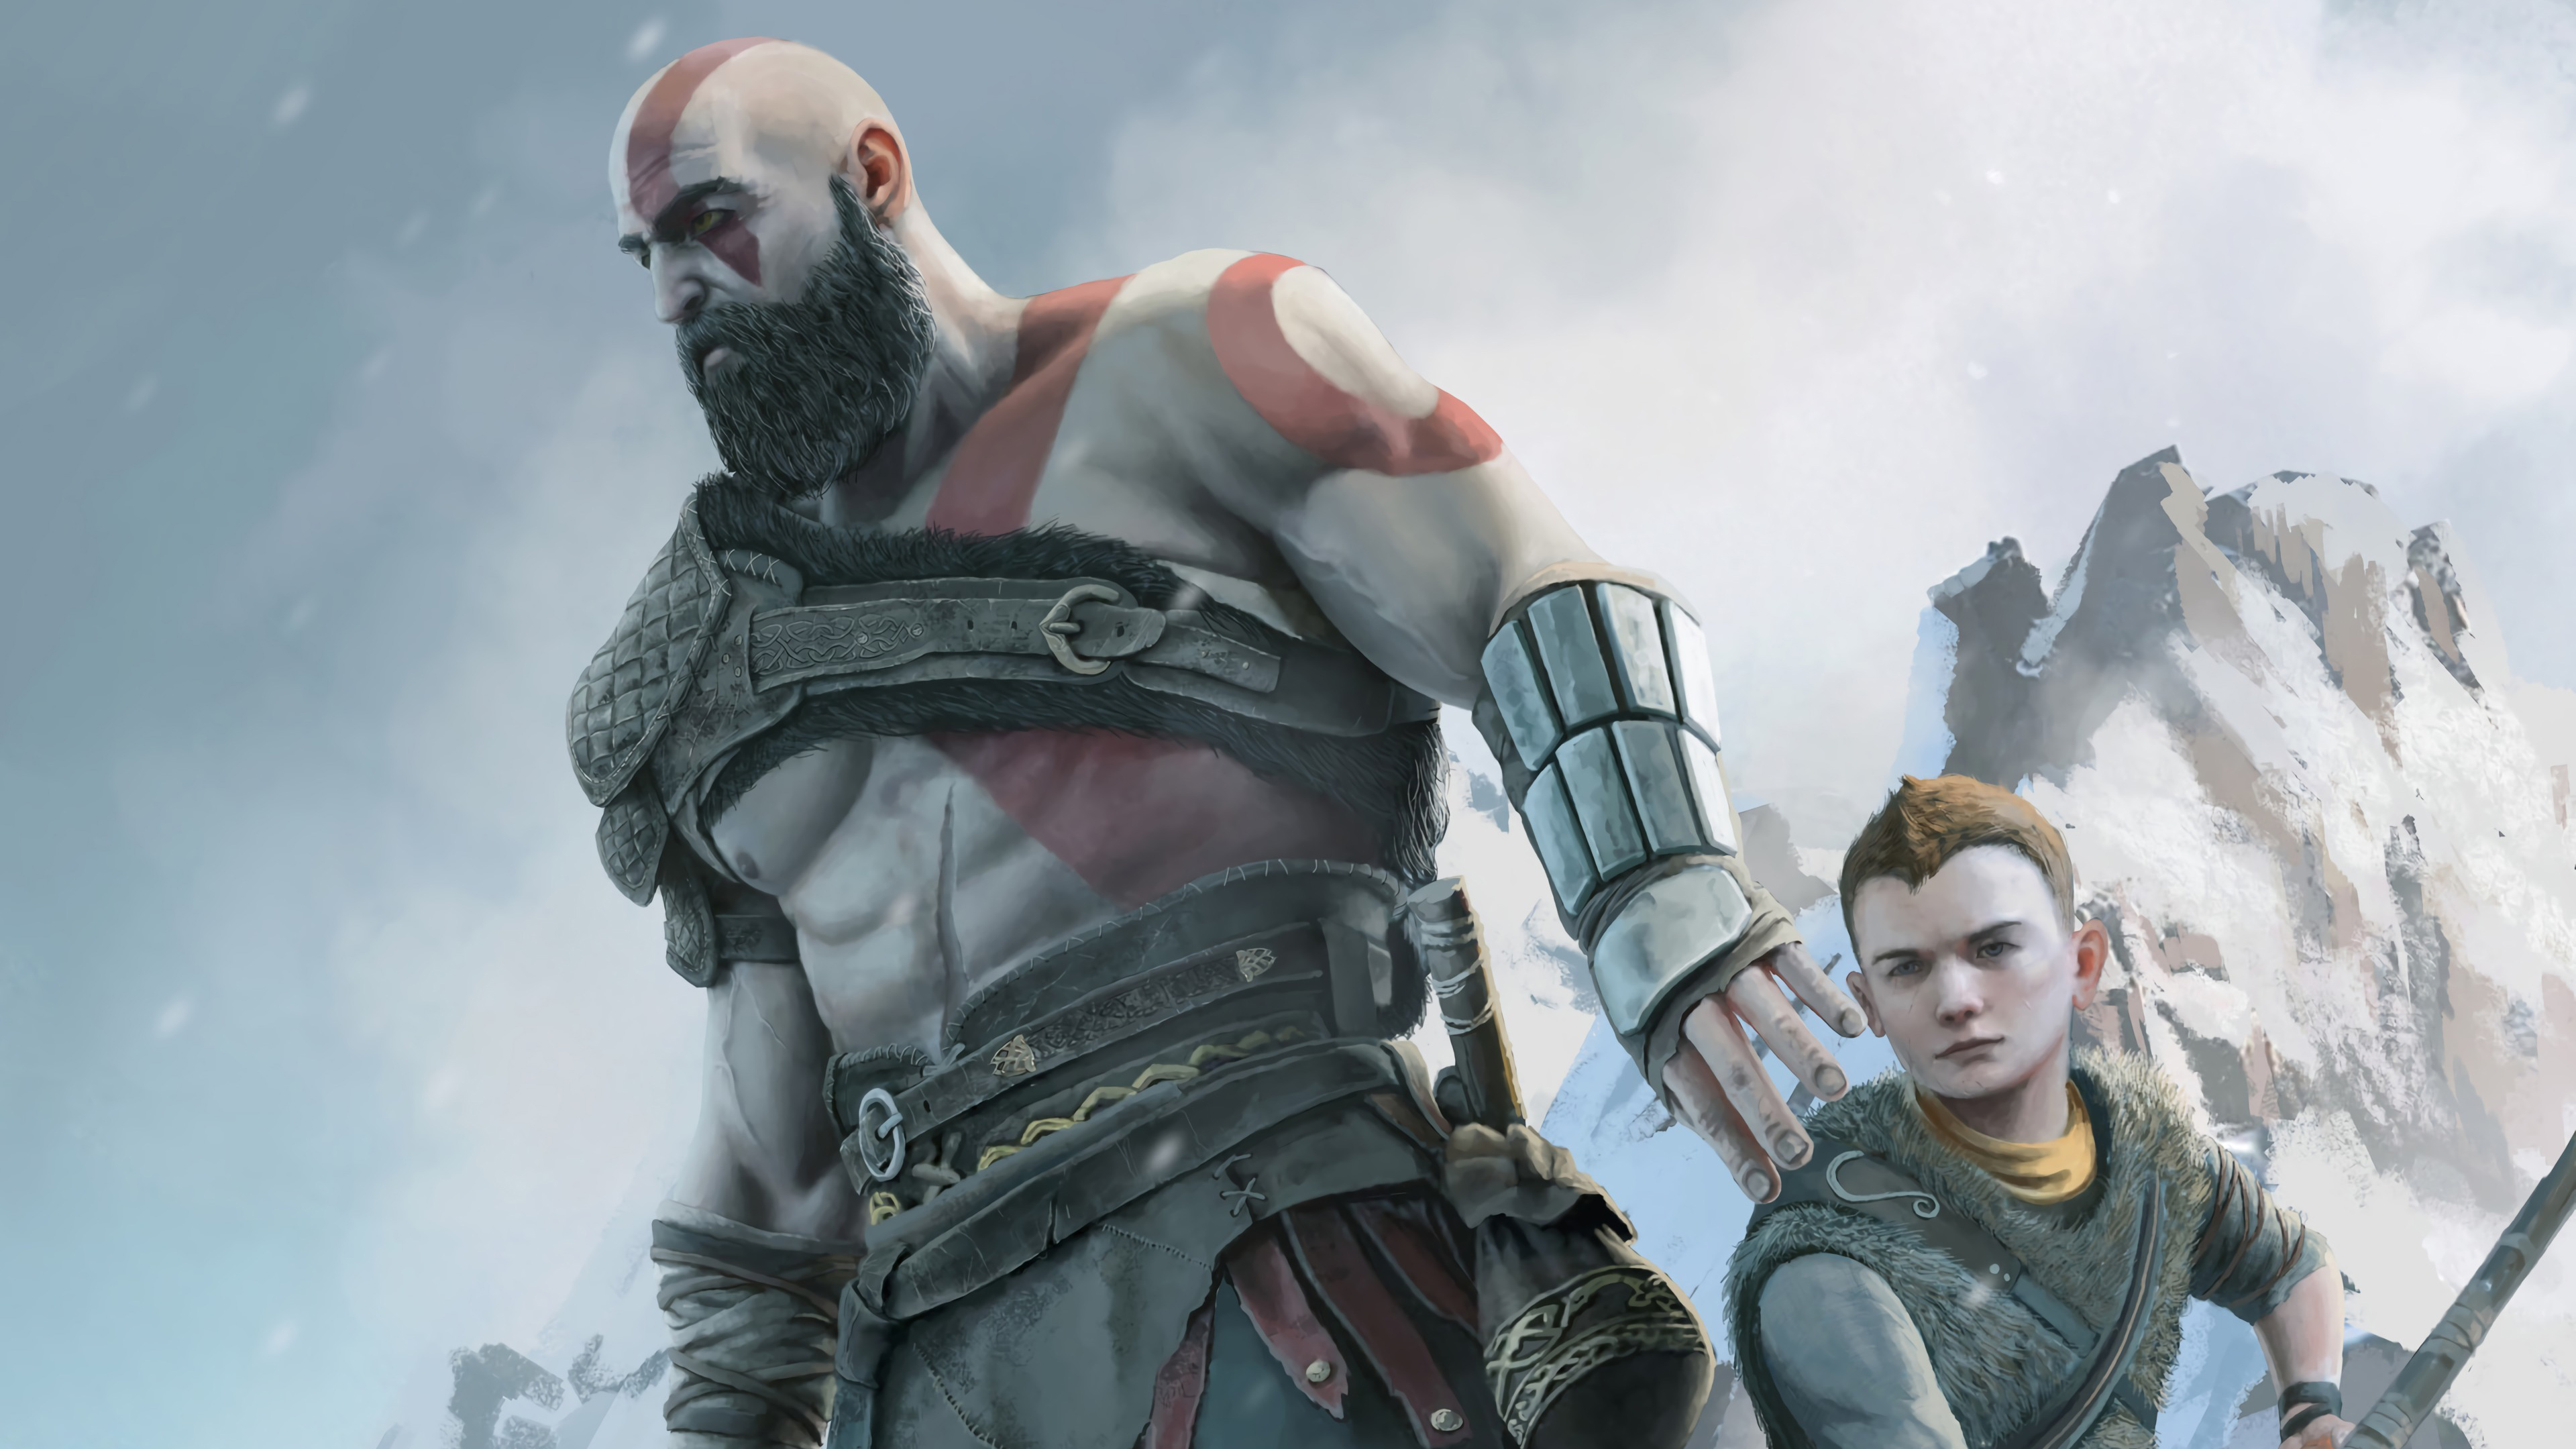 dad and son 1570393021 - Dad And Son - kratos wallpapers, hd-wallpapers, god of war wallpapers, digital art wallpapers, artwork wallpapers, artstation wallpapers, 4k-wallpapers